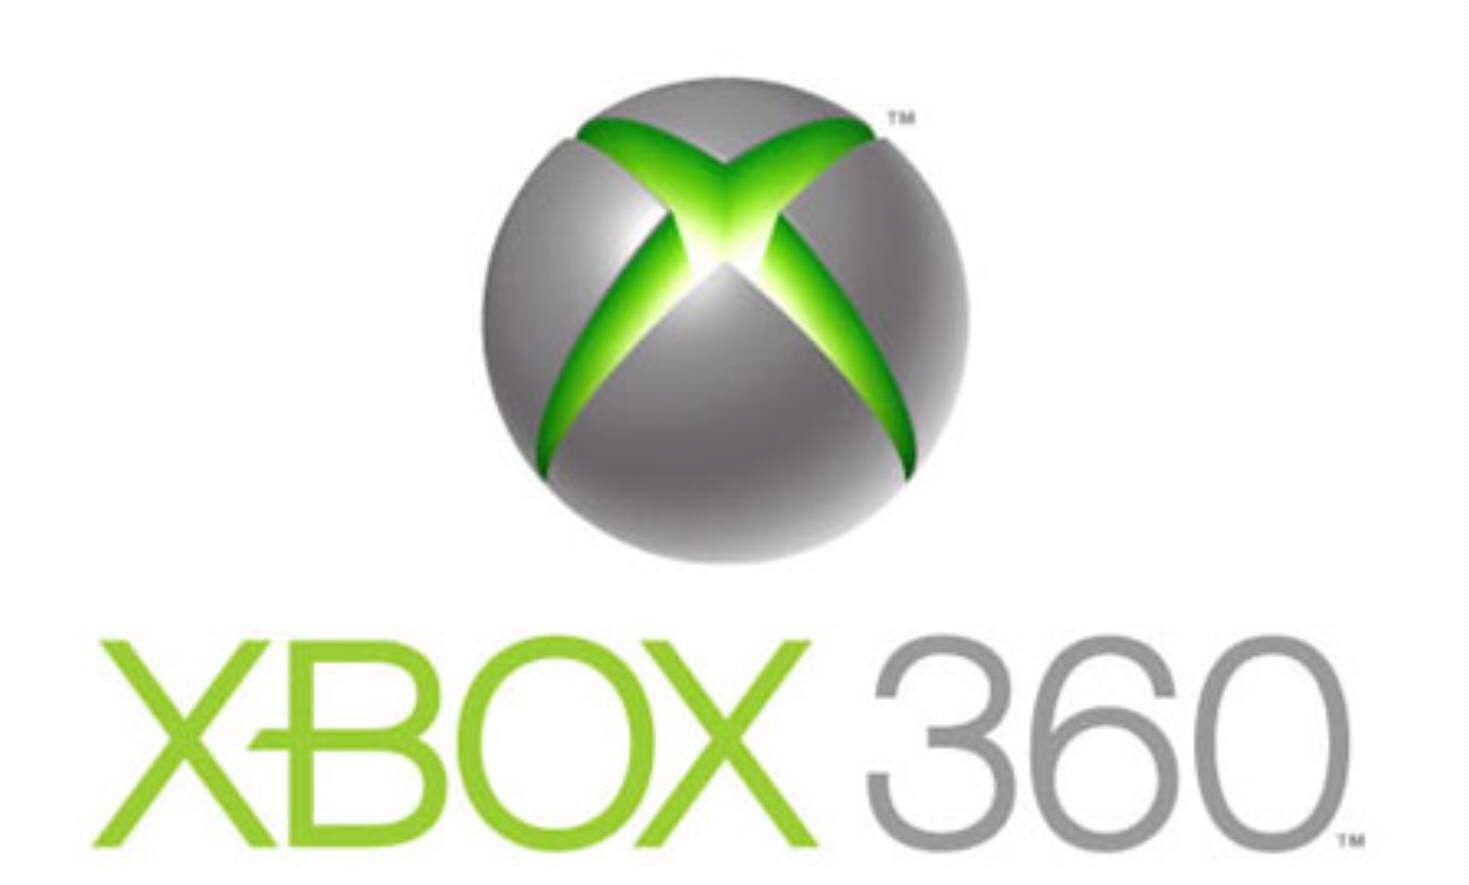 Xbox 360 Accounts for 47% share of console market